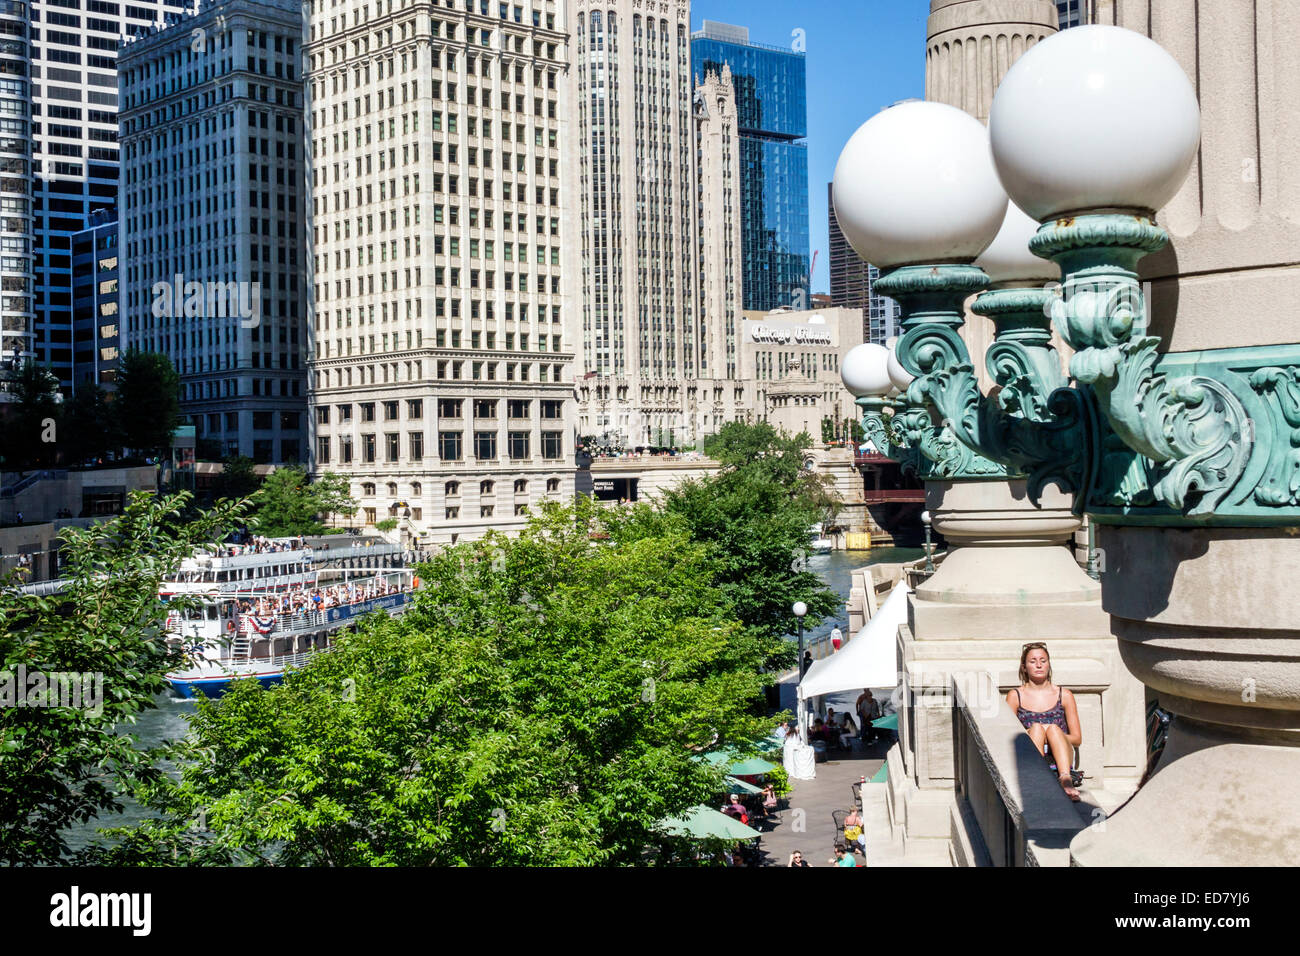 Chicago Illinois Chicago River downtown Wrigley Building city skyline skyscrapers Riverwalk resident woman sunning - Stock Image